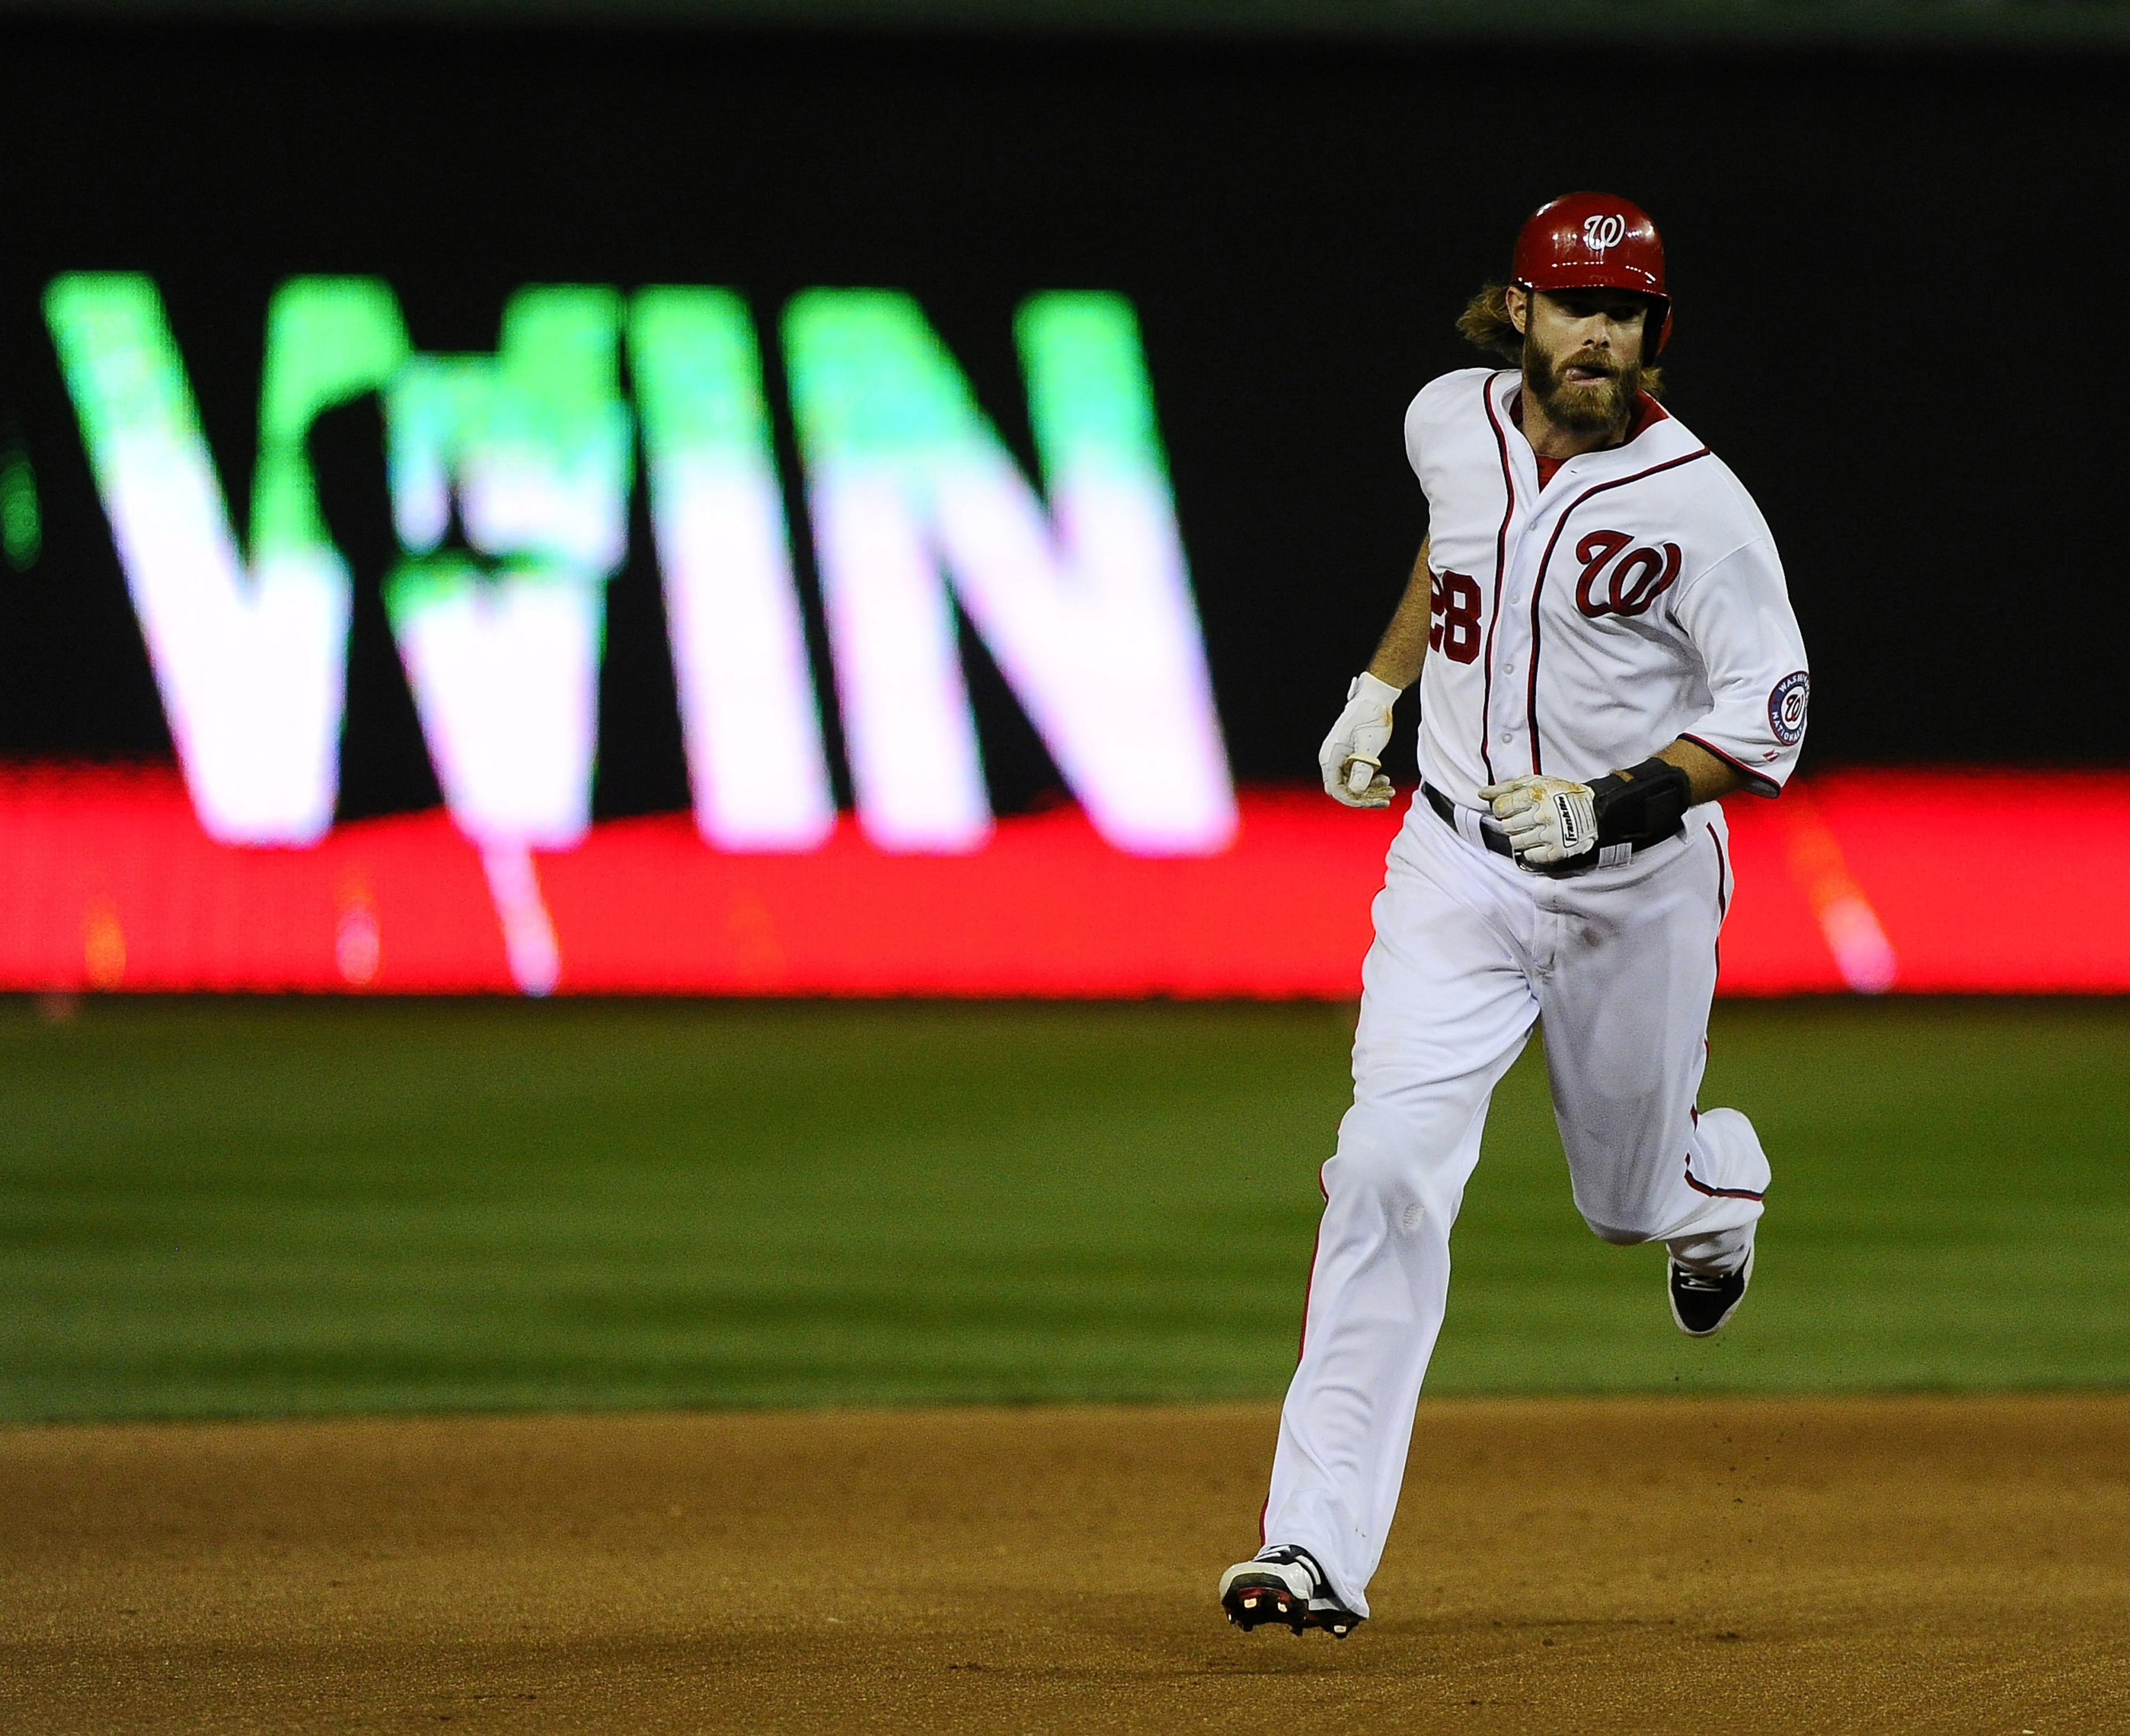 Jayson Werth has a beard. He also worked a 13-pitch at-bat for a Home run.